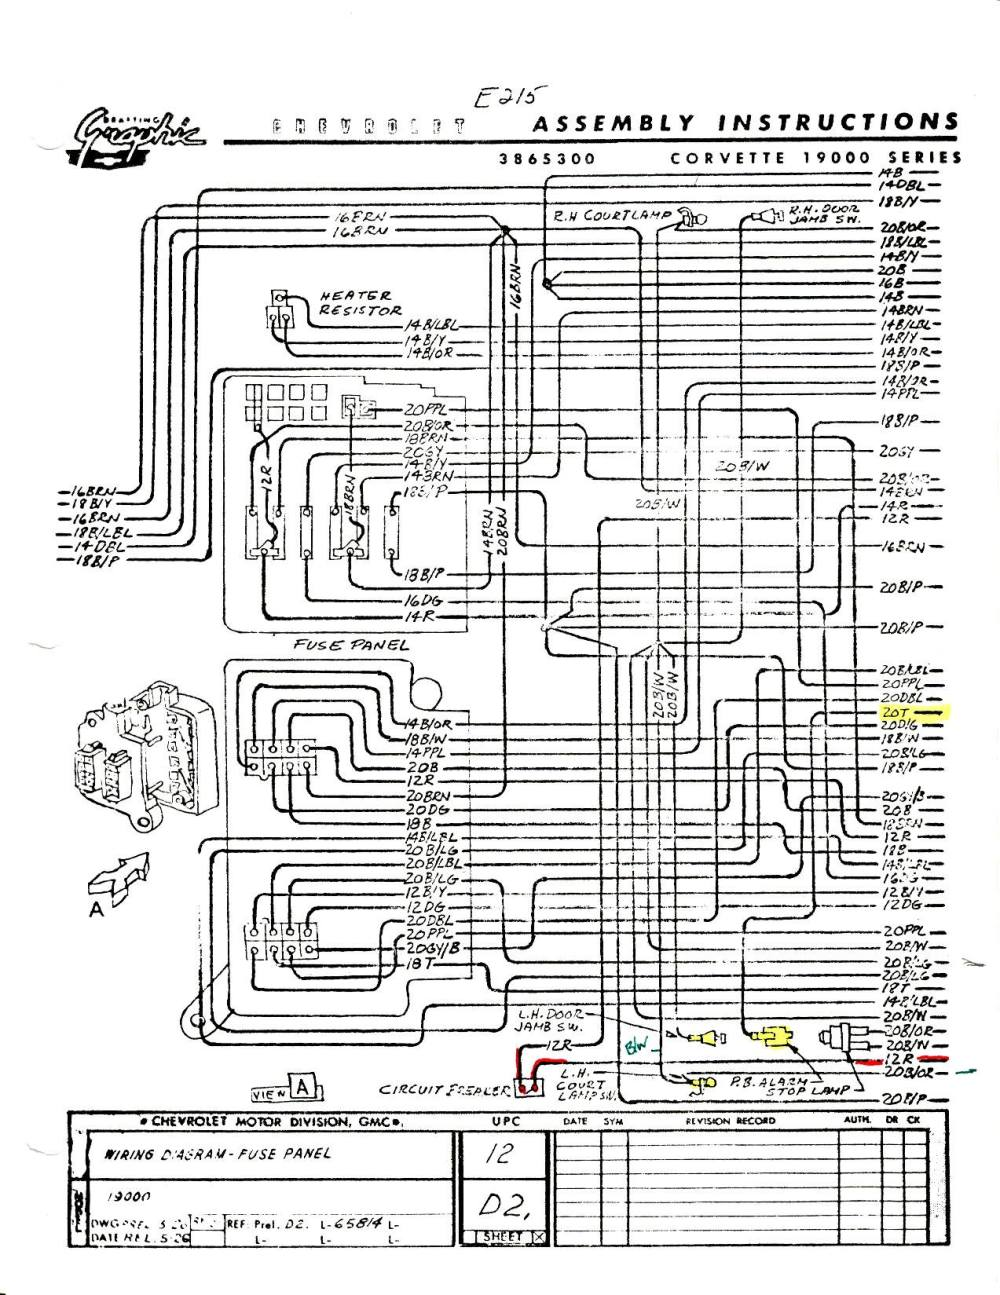 medium resolution of c6 engine harness diagram wiring diagram source c6 corvette wiring diagrams c6 engine harness diagram wiring